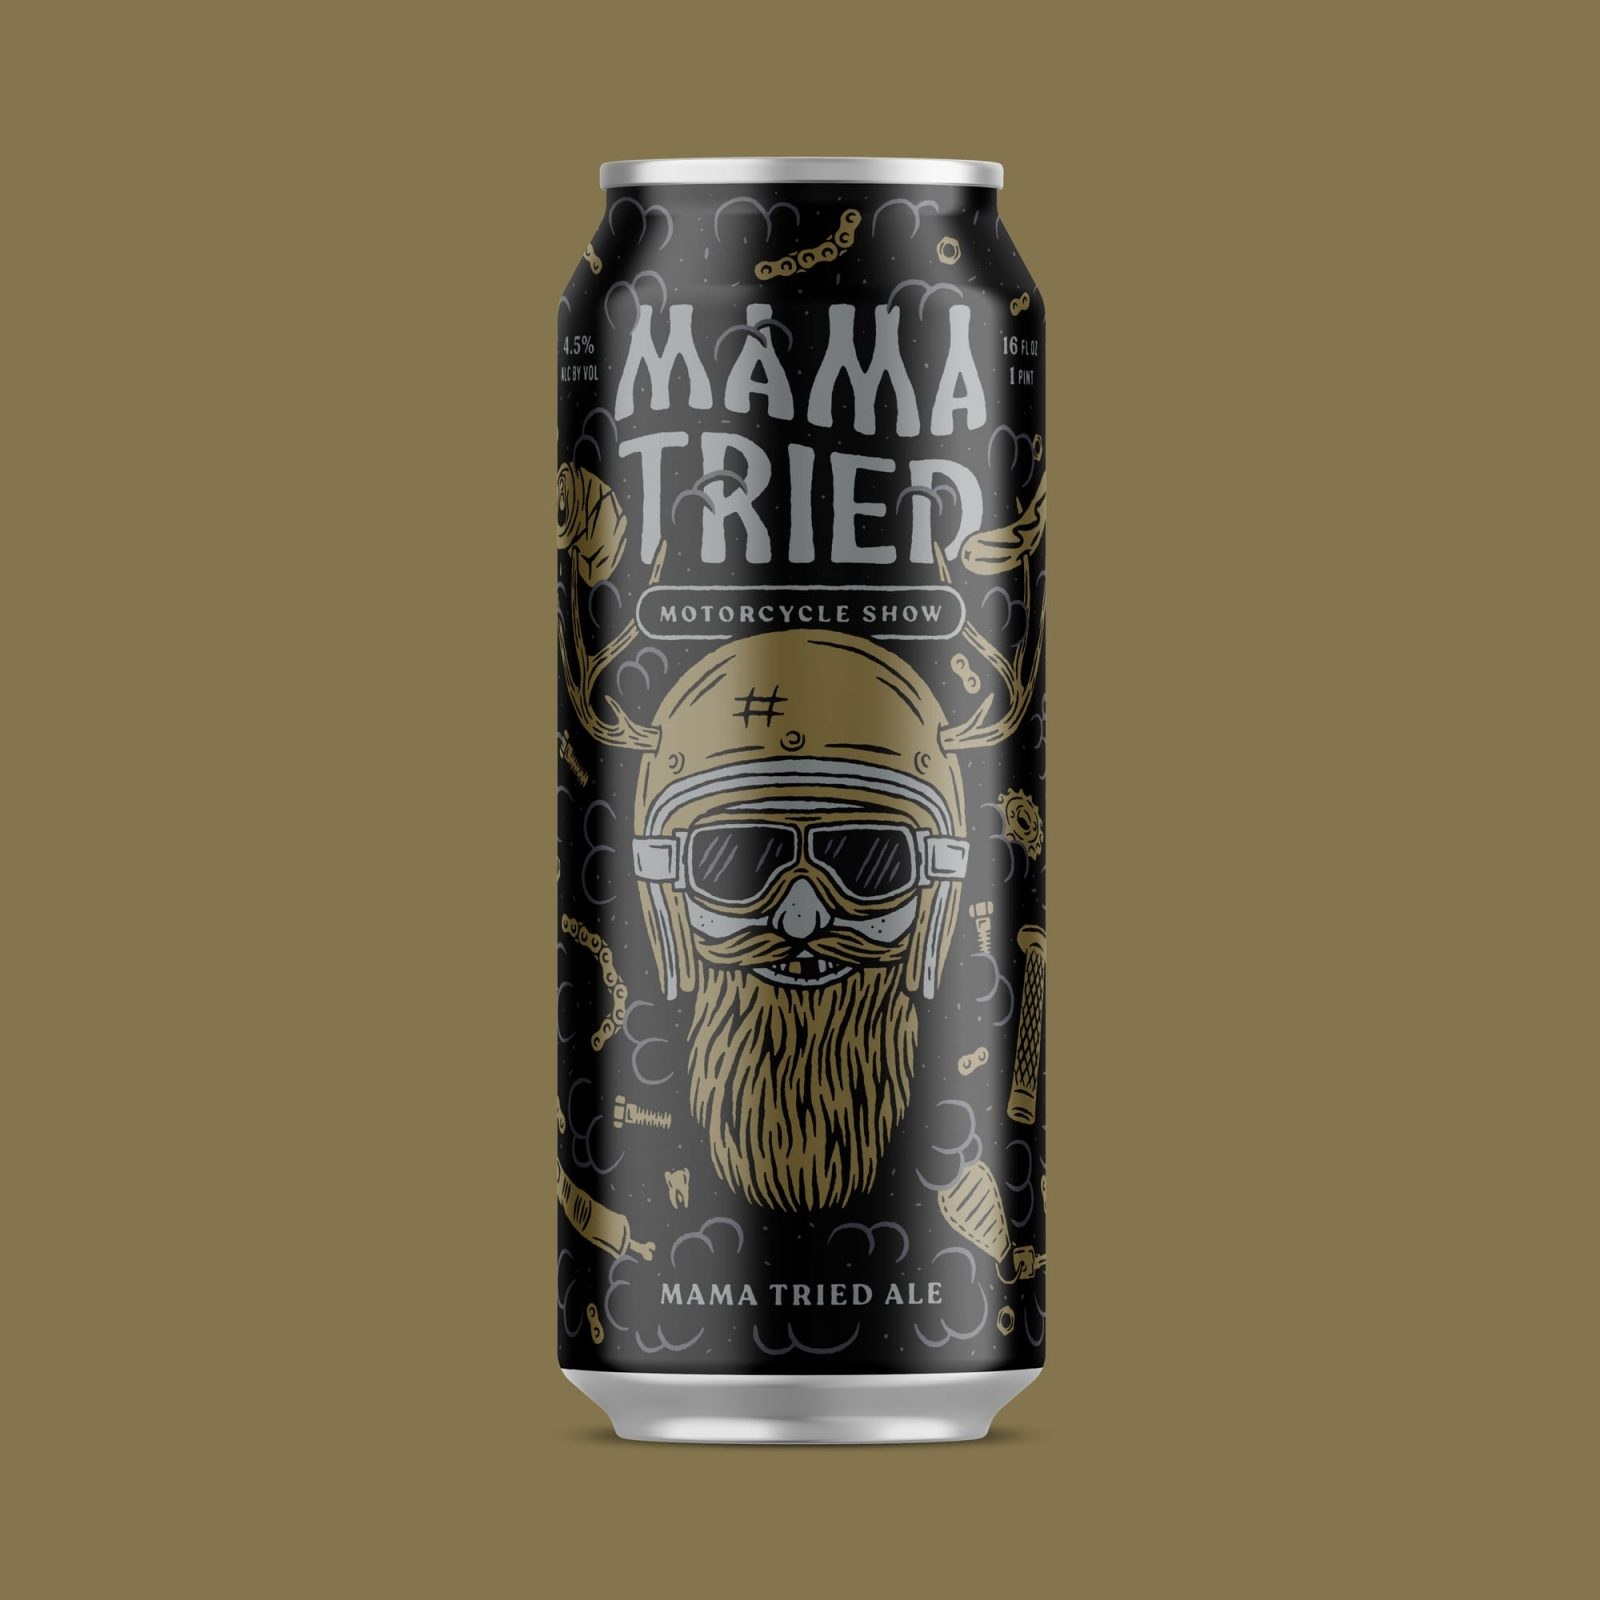 Packaging for Mama Tried Ale by Good City Brewing